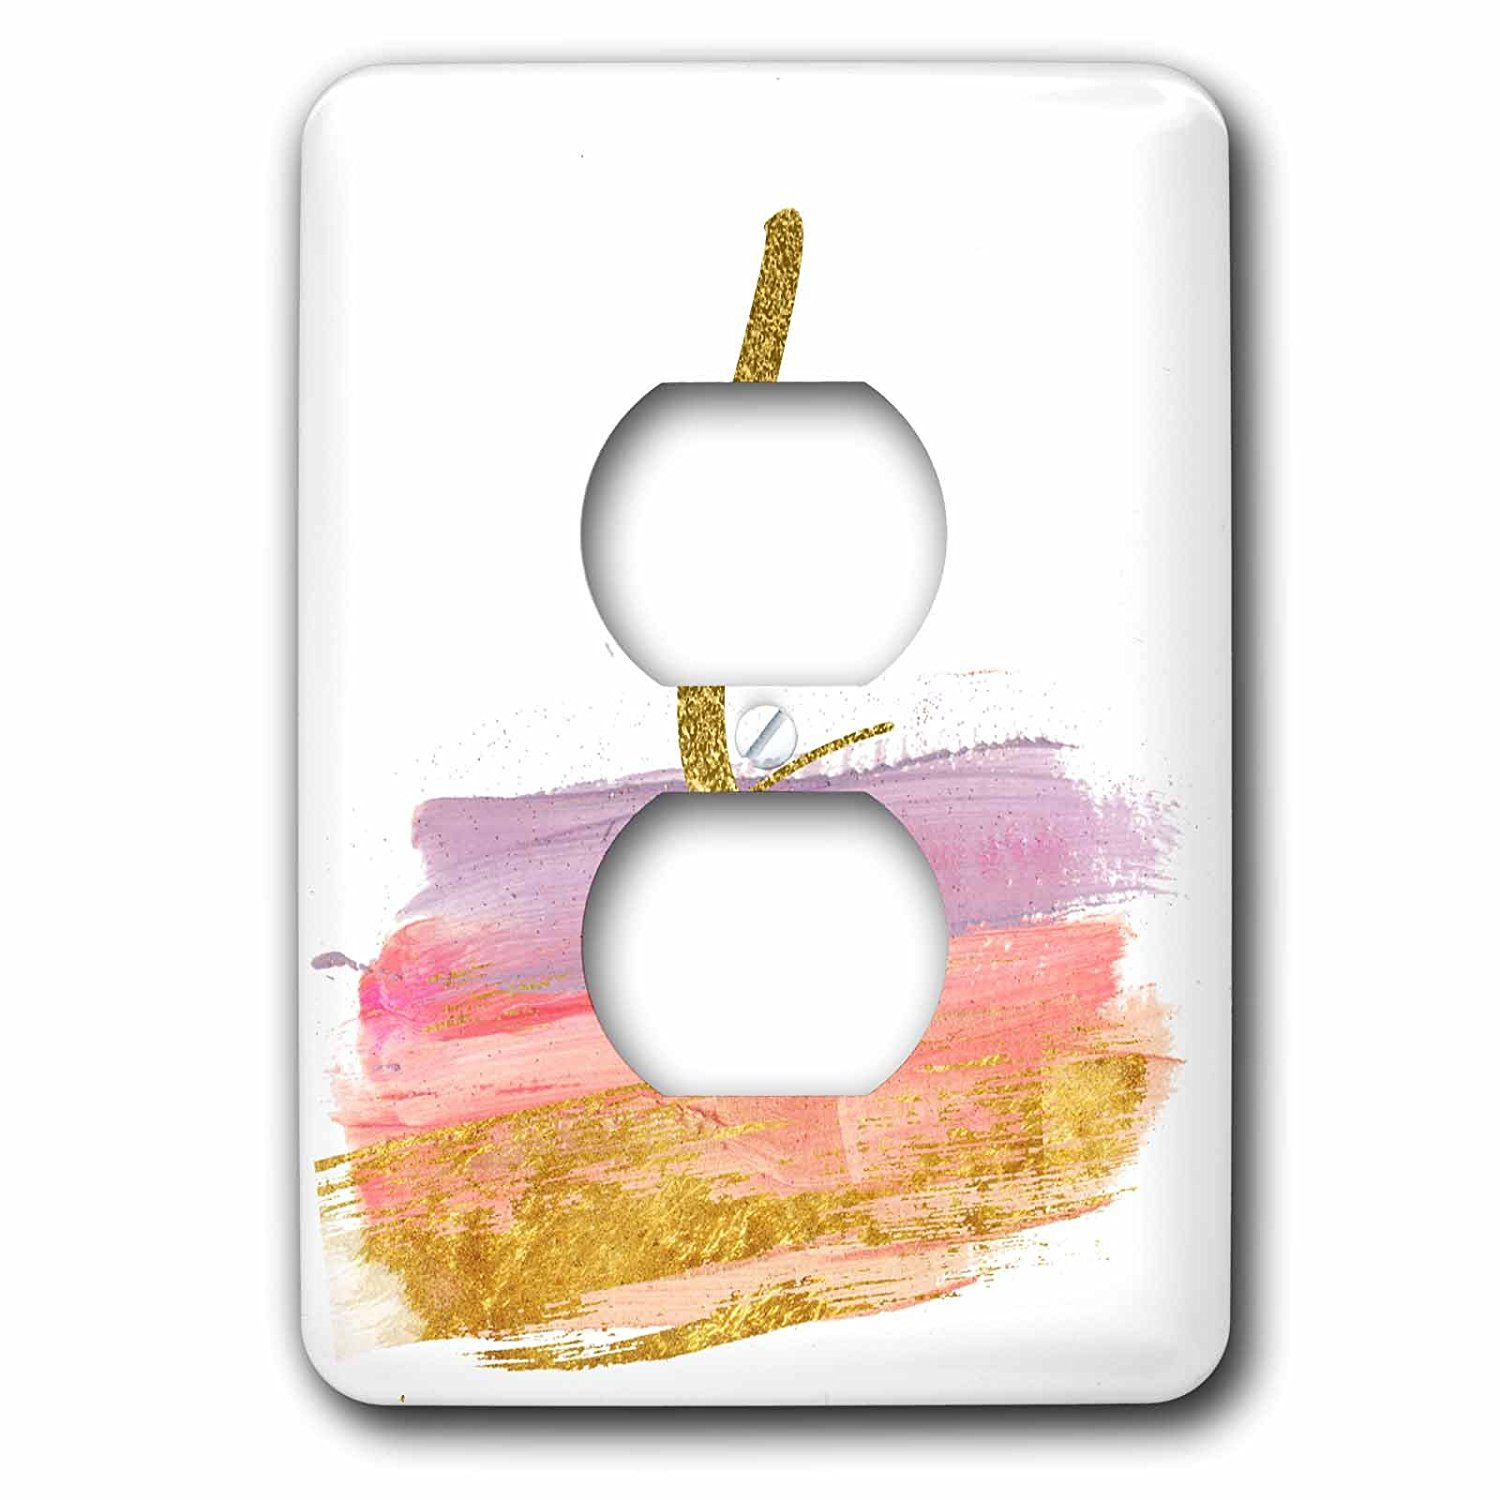 3dRose Anne Marie Baugh - Monograms - Modern Purple, Pink, Gold, Brush Strokes Monogram L - Light Switch Covers - 2 plug outlet cover (lsp_267749_6)